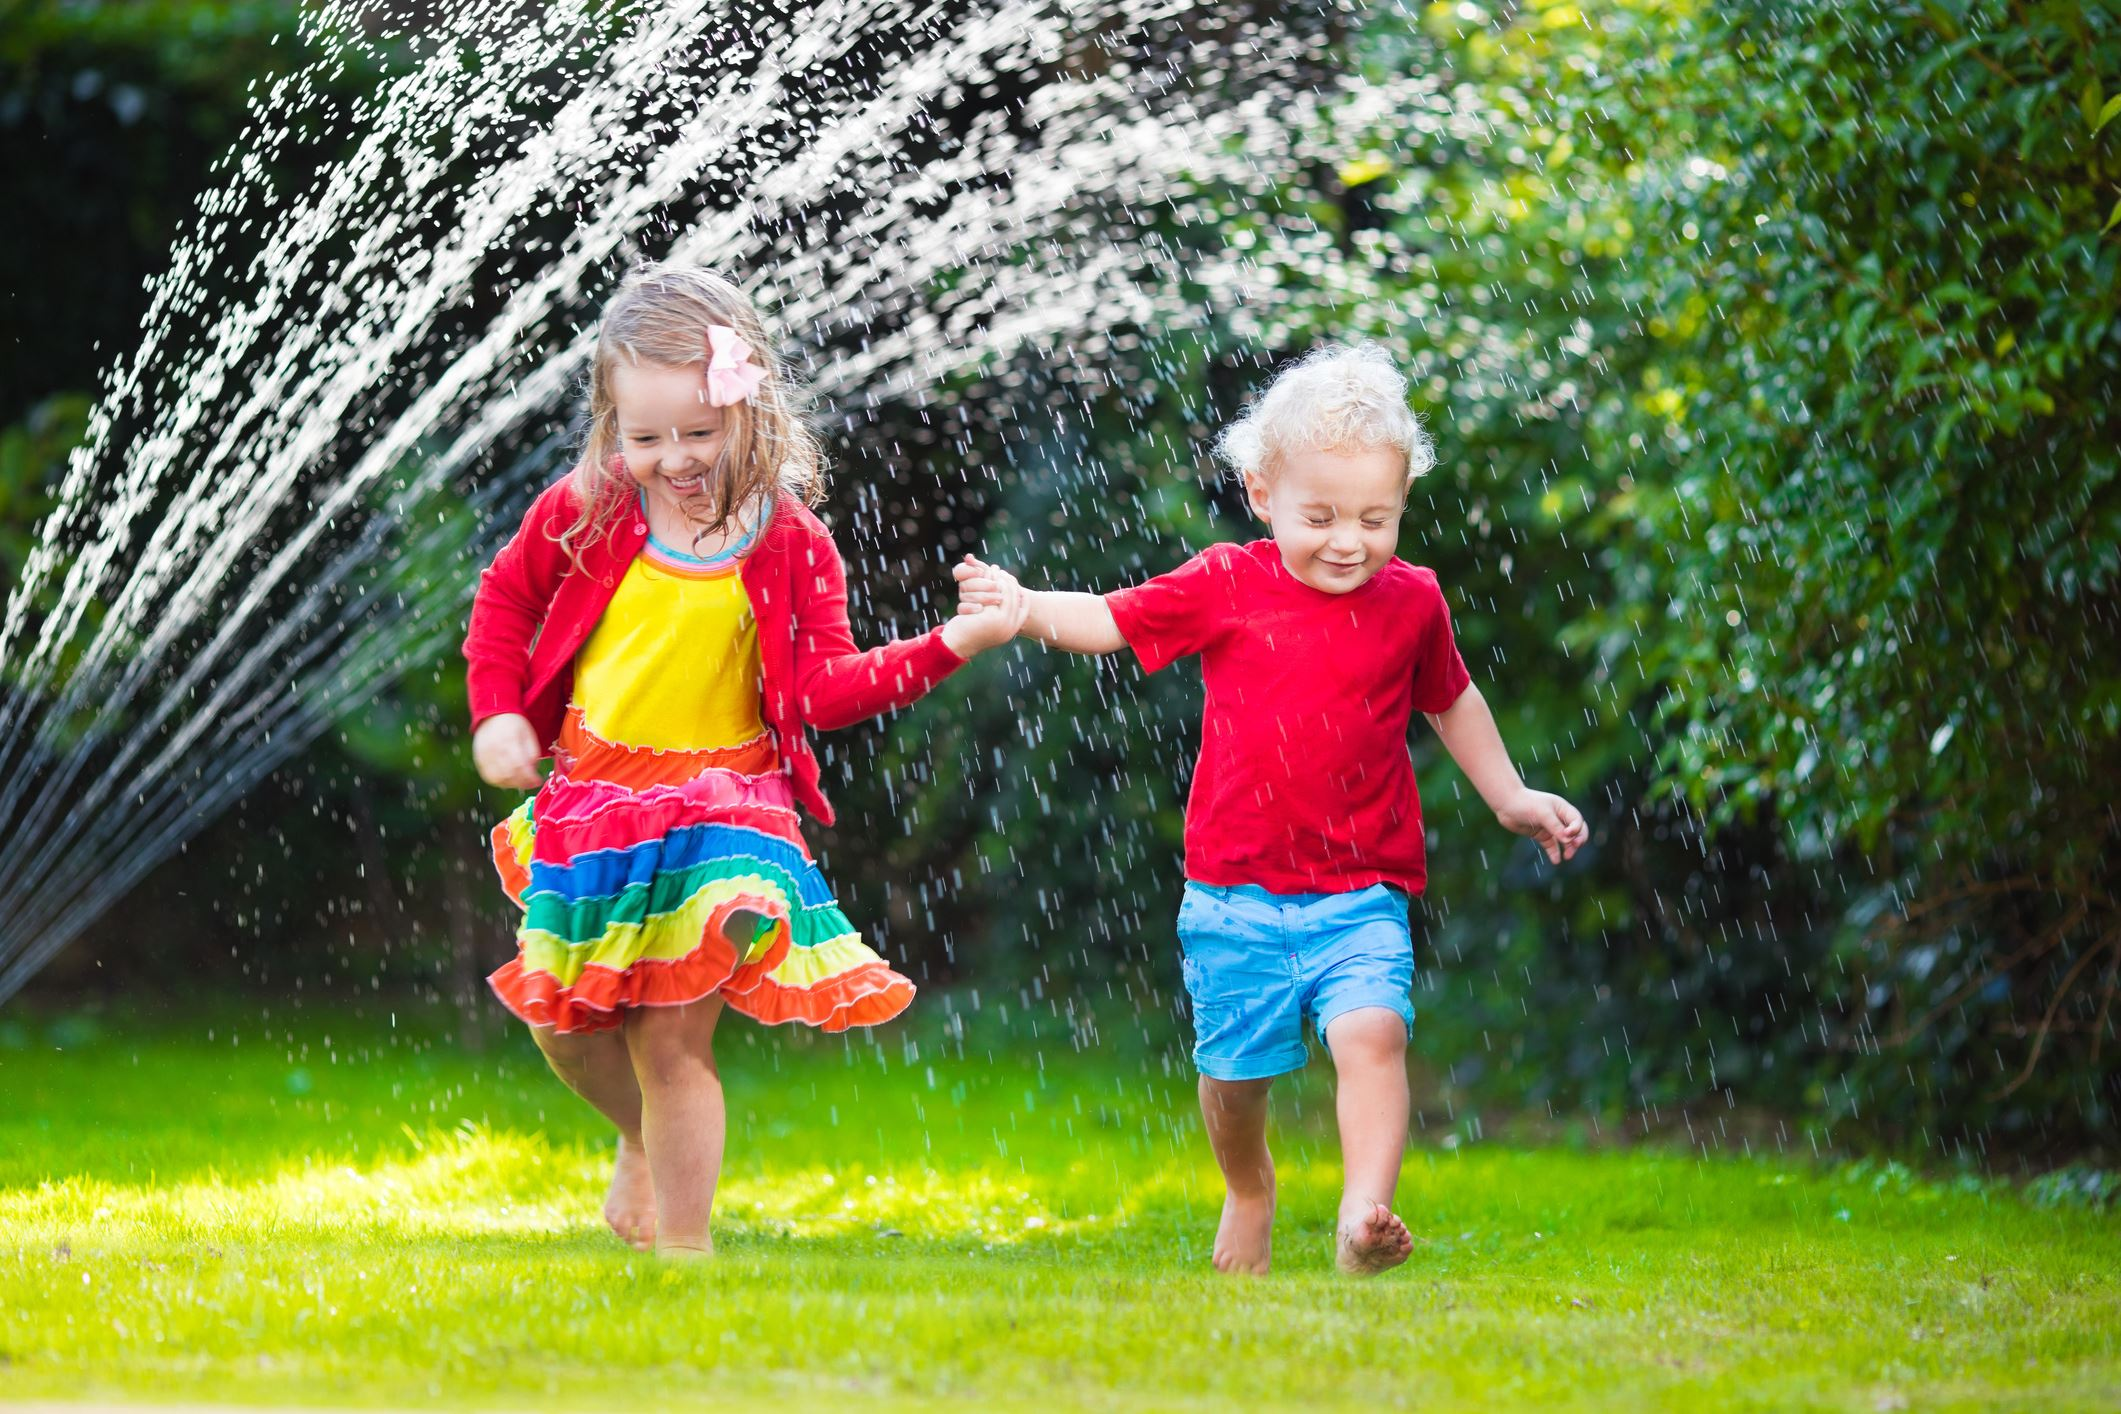 Children playing in the sprinkler